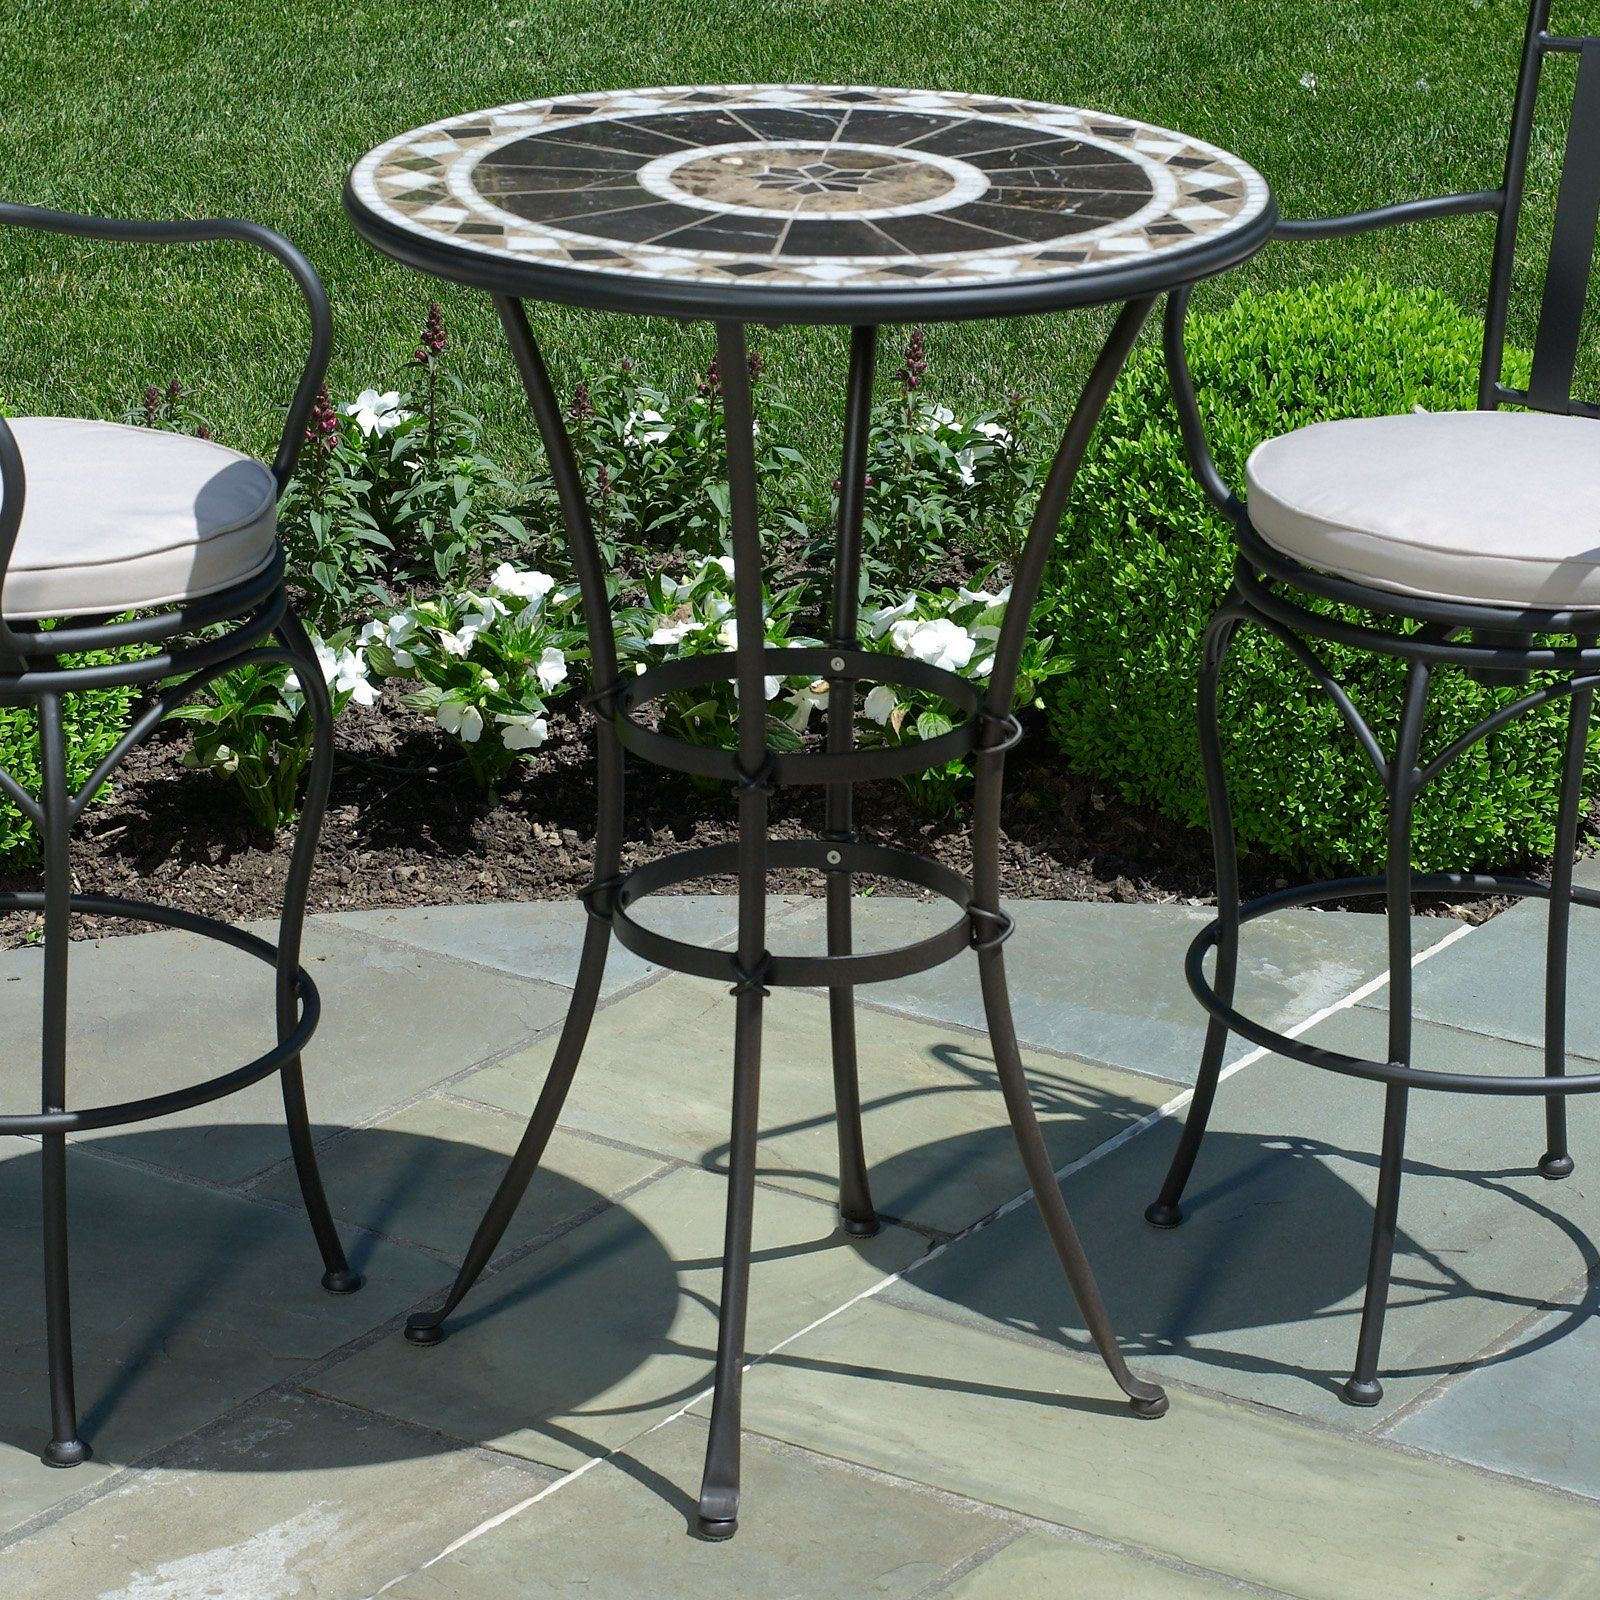 Small elegant peerless round table and stools bar height patio small elegant peerless round table and stools bar height patio furniture wicker an essential element to outdoor space with small round patio table plus watchthetrailerfo